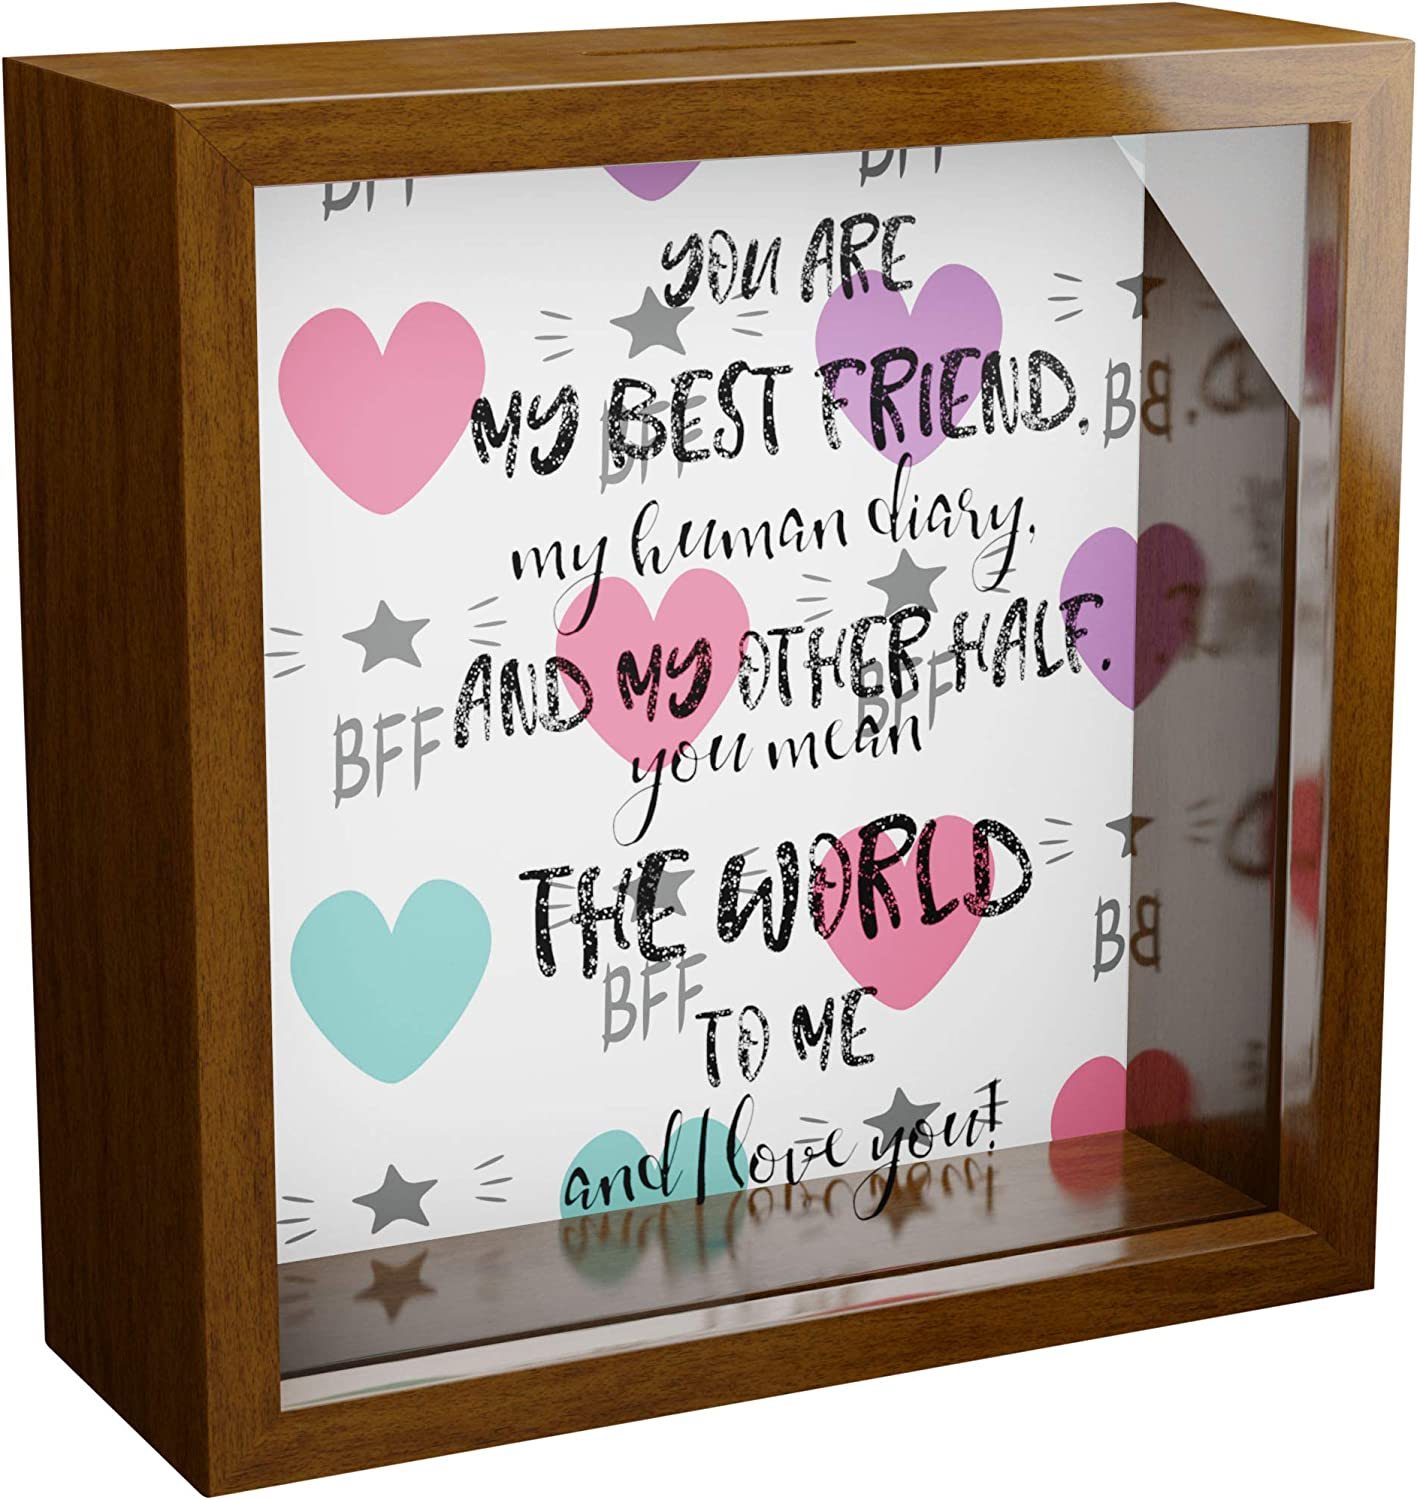 for Women 6x6x2 Wooden Keepsake Box with Glass Front Wall Decor Frames for Bestie Friendship Memorabilia Shadow Box for Girls Great to Collect Special Items